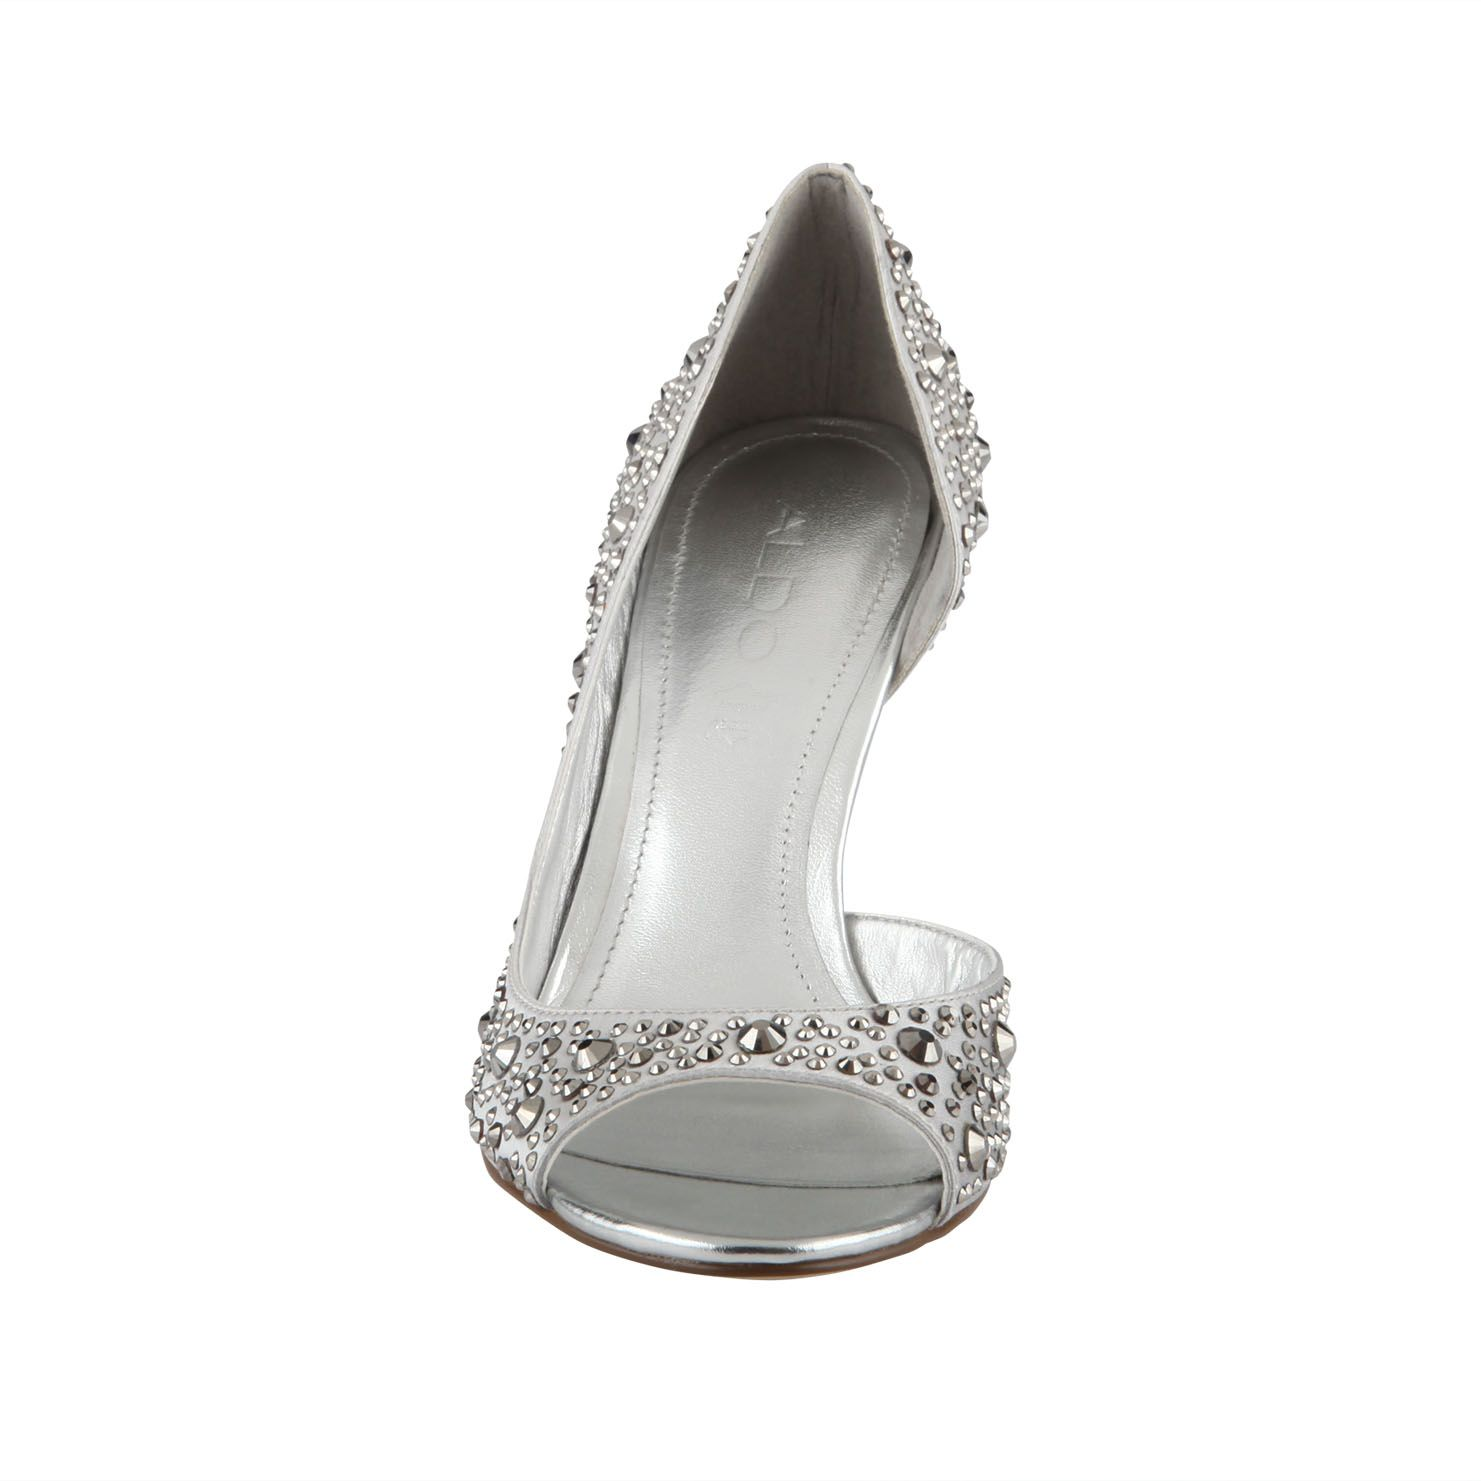 Aelizia Peep Toe Court Shoes